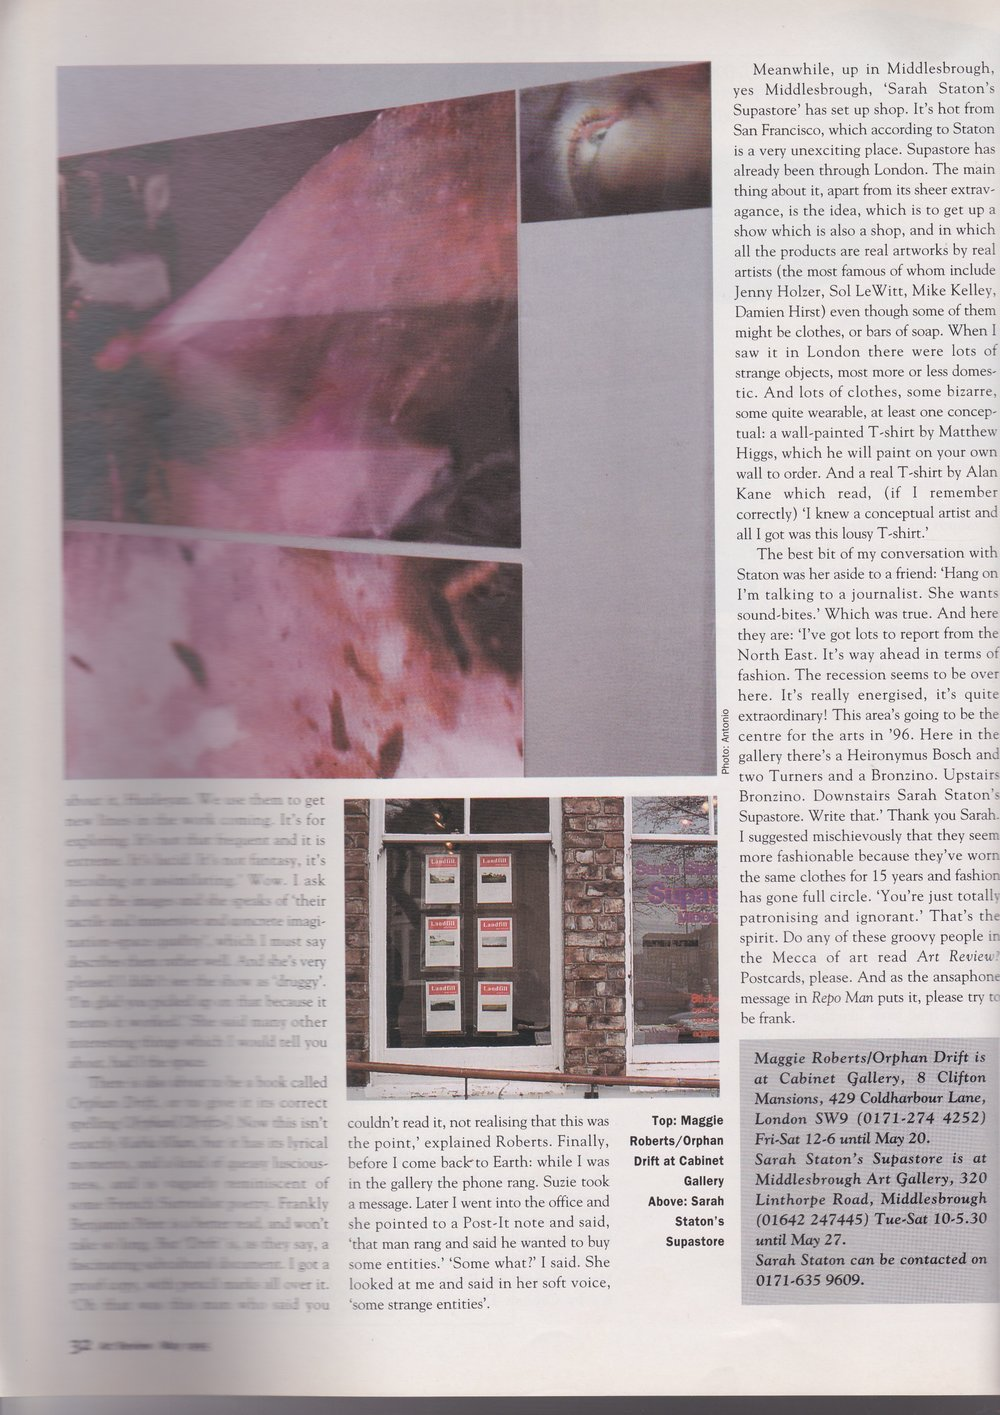 art review may 95 page 2.jpg